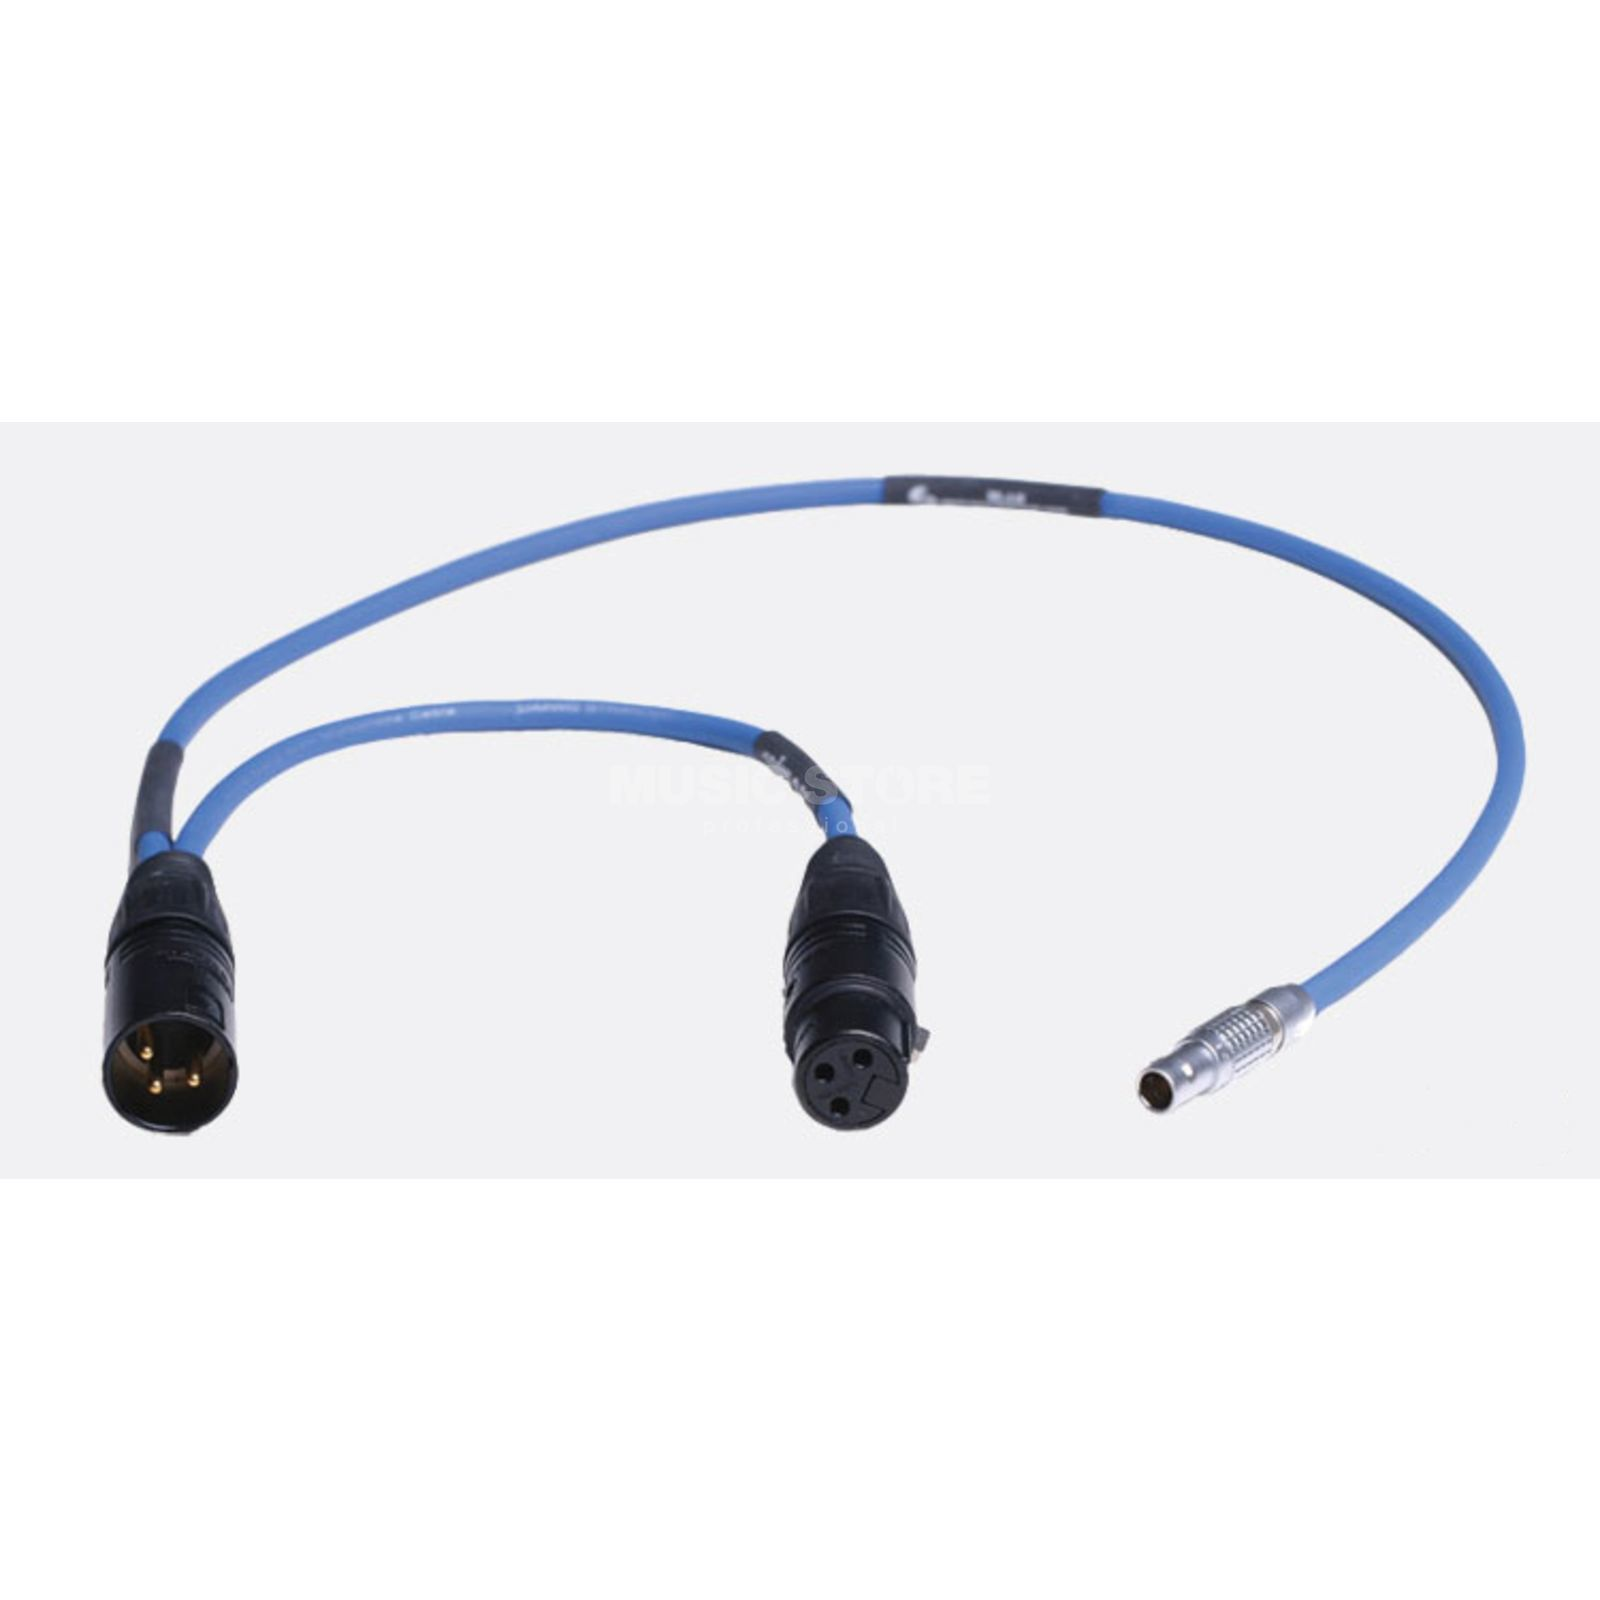 Sounddevices XL Lx - AR Cable TC I/O: Lemo-5/XLR3-M+XLR3-F Produktbillede